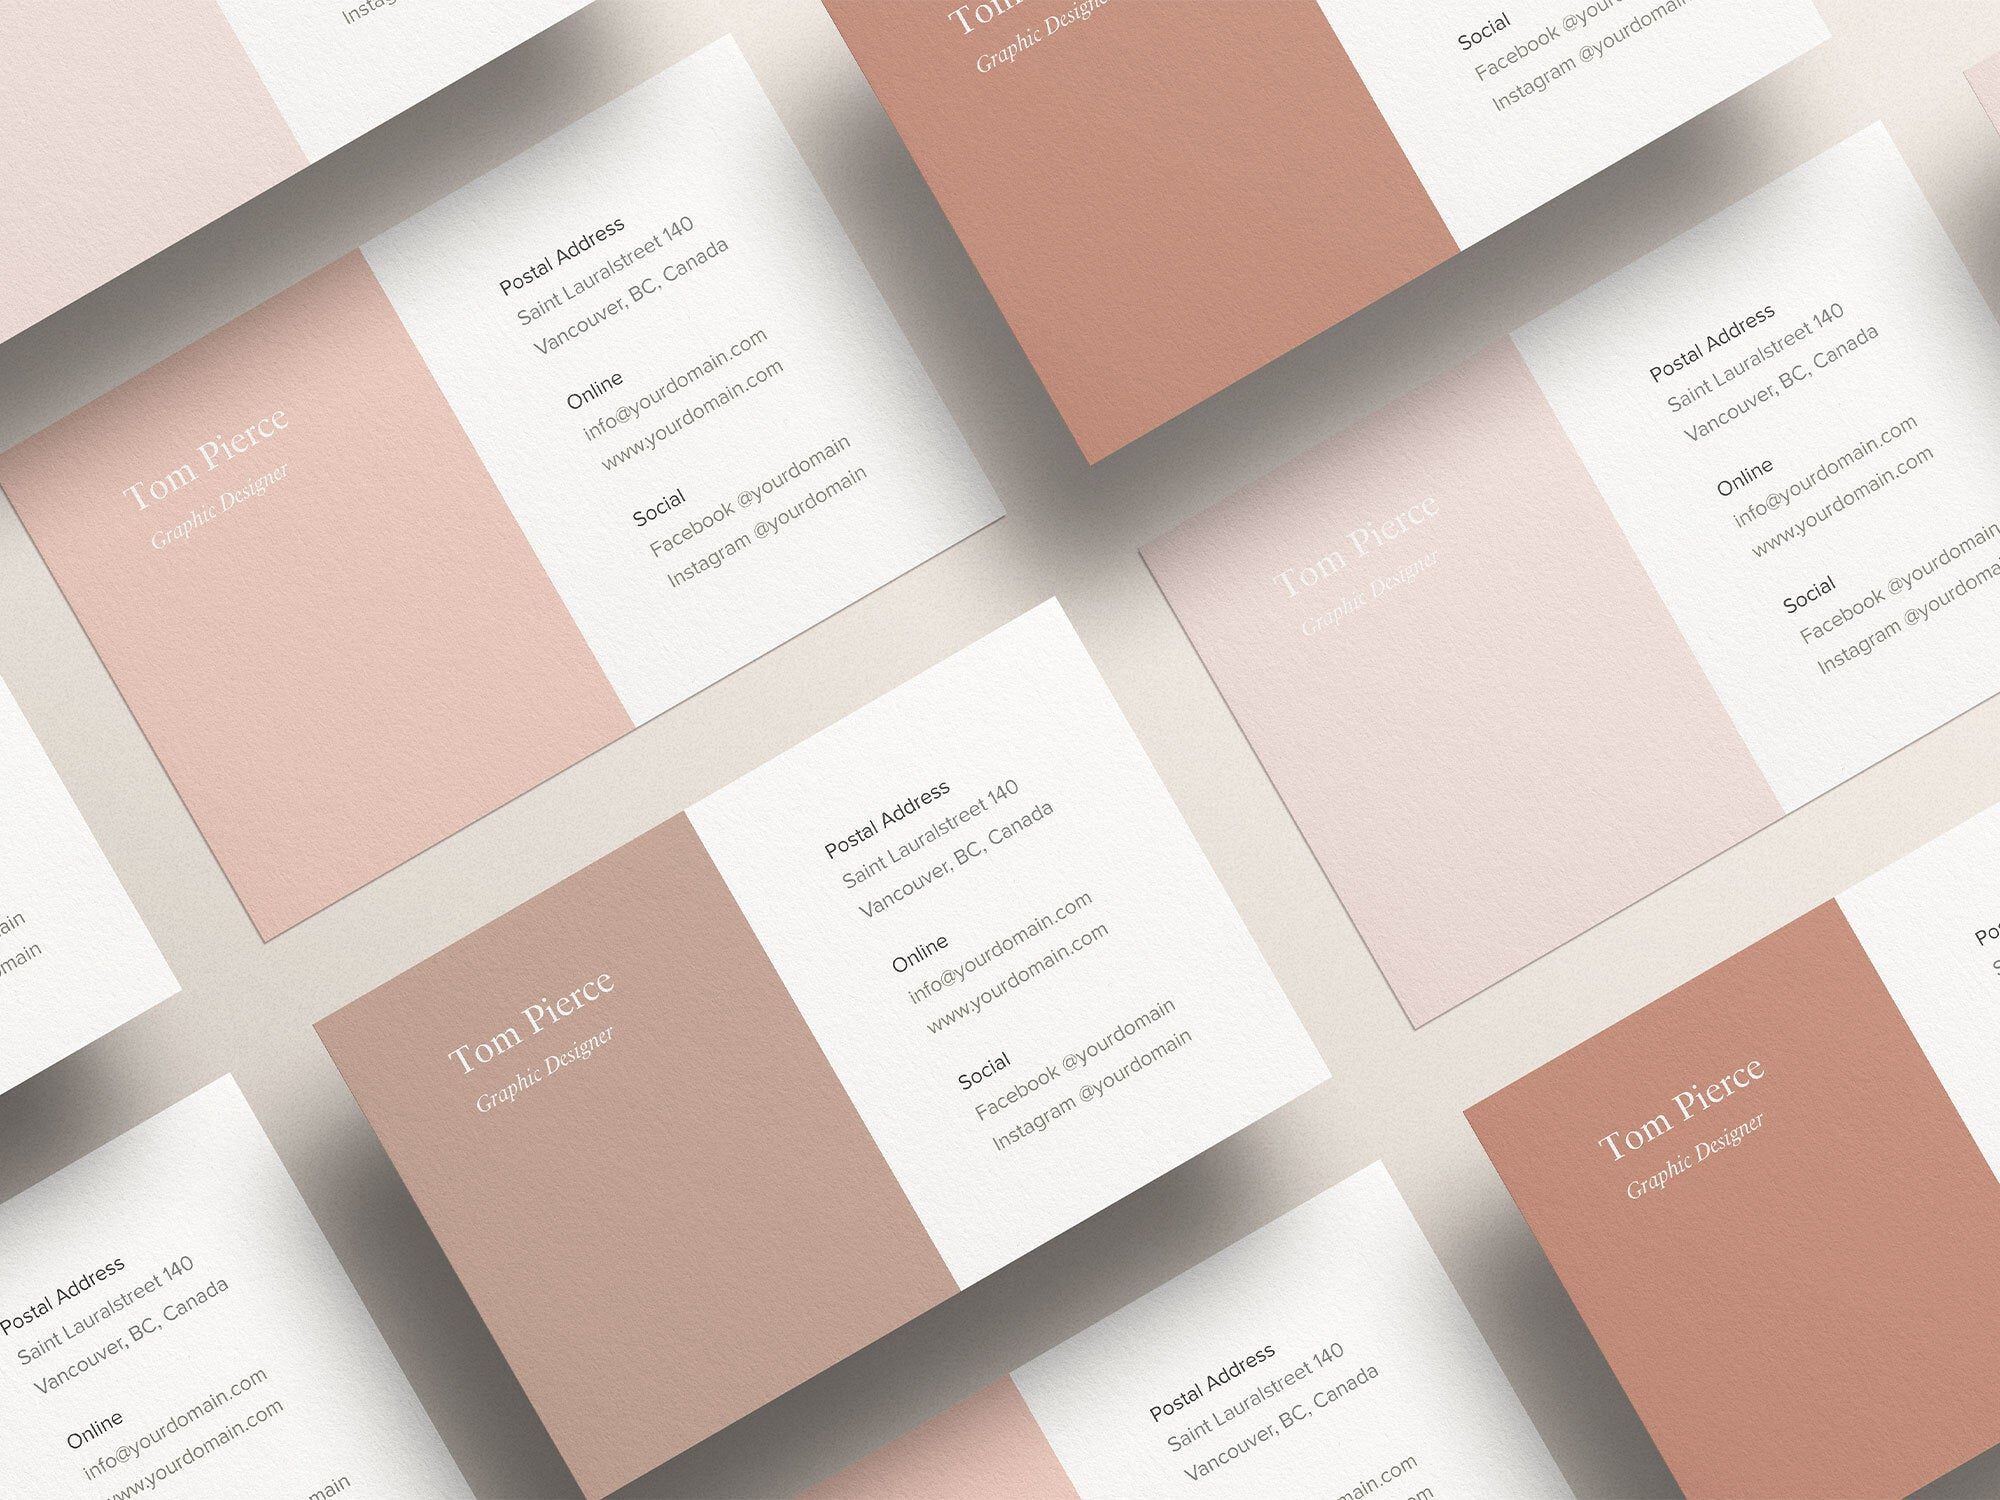 An example where the colors of a brand identity have been implemented in the design of the business cards (product used as showcase: Business Card Mockup Kit).